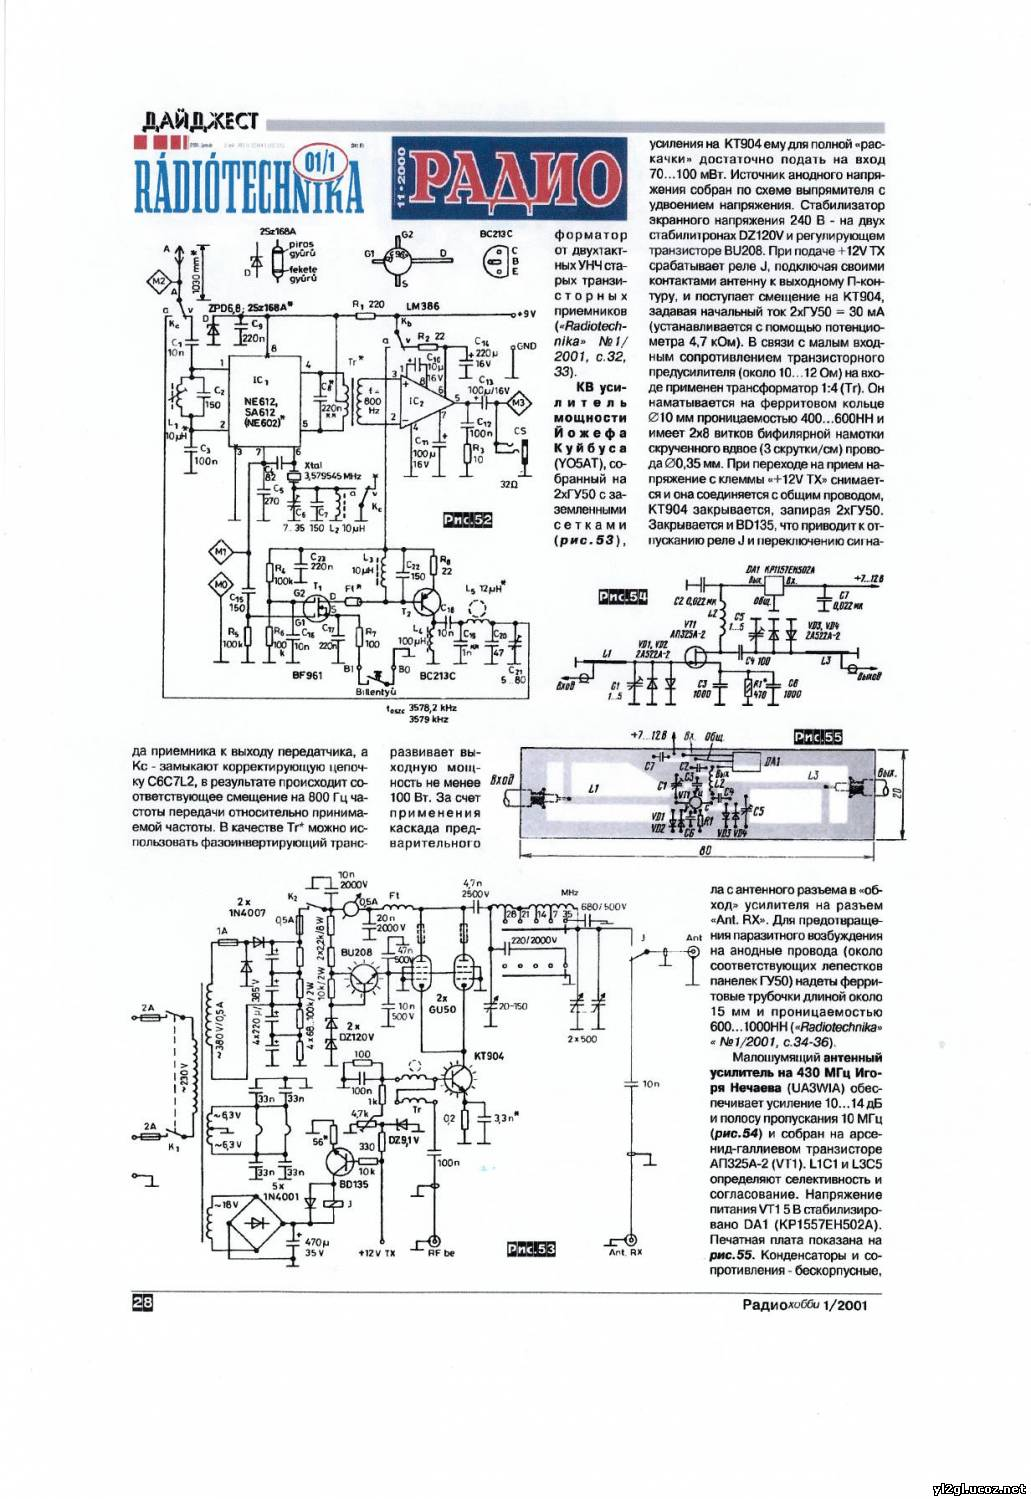 The interesting QRP CW transceiver of direct transformation on the fixed frequency 80 meter ranges, on the shirokodostupny quartz resonator, is published in the Radiotechnika Nr.1 magazine for...